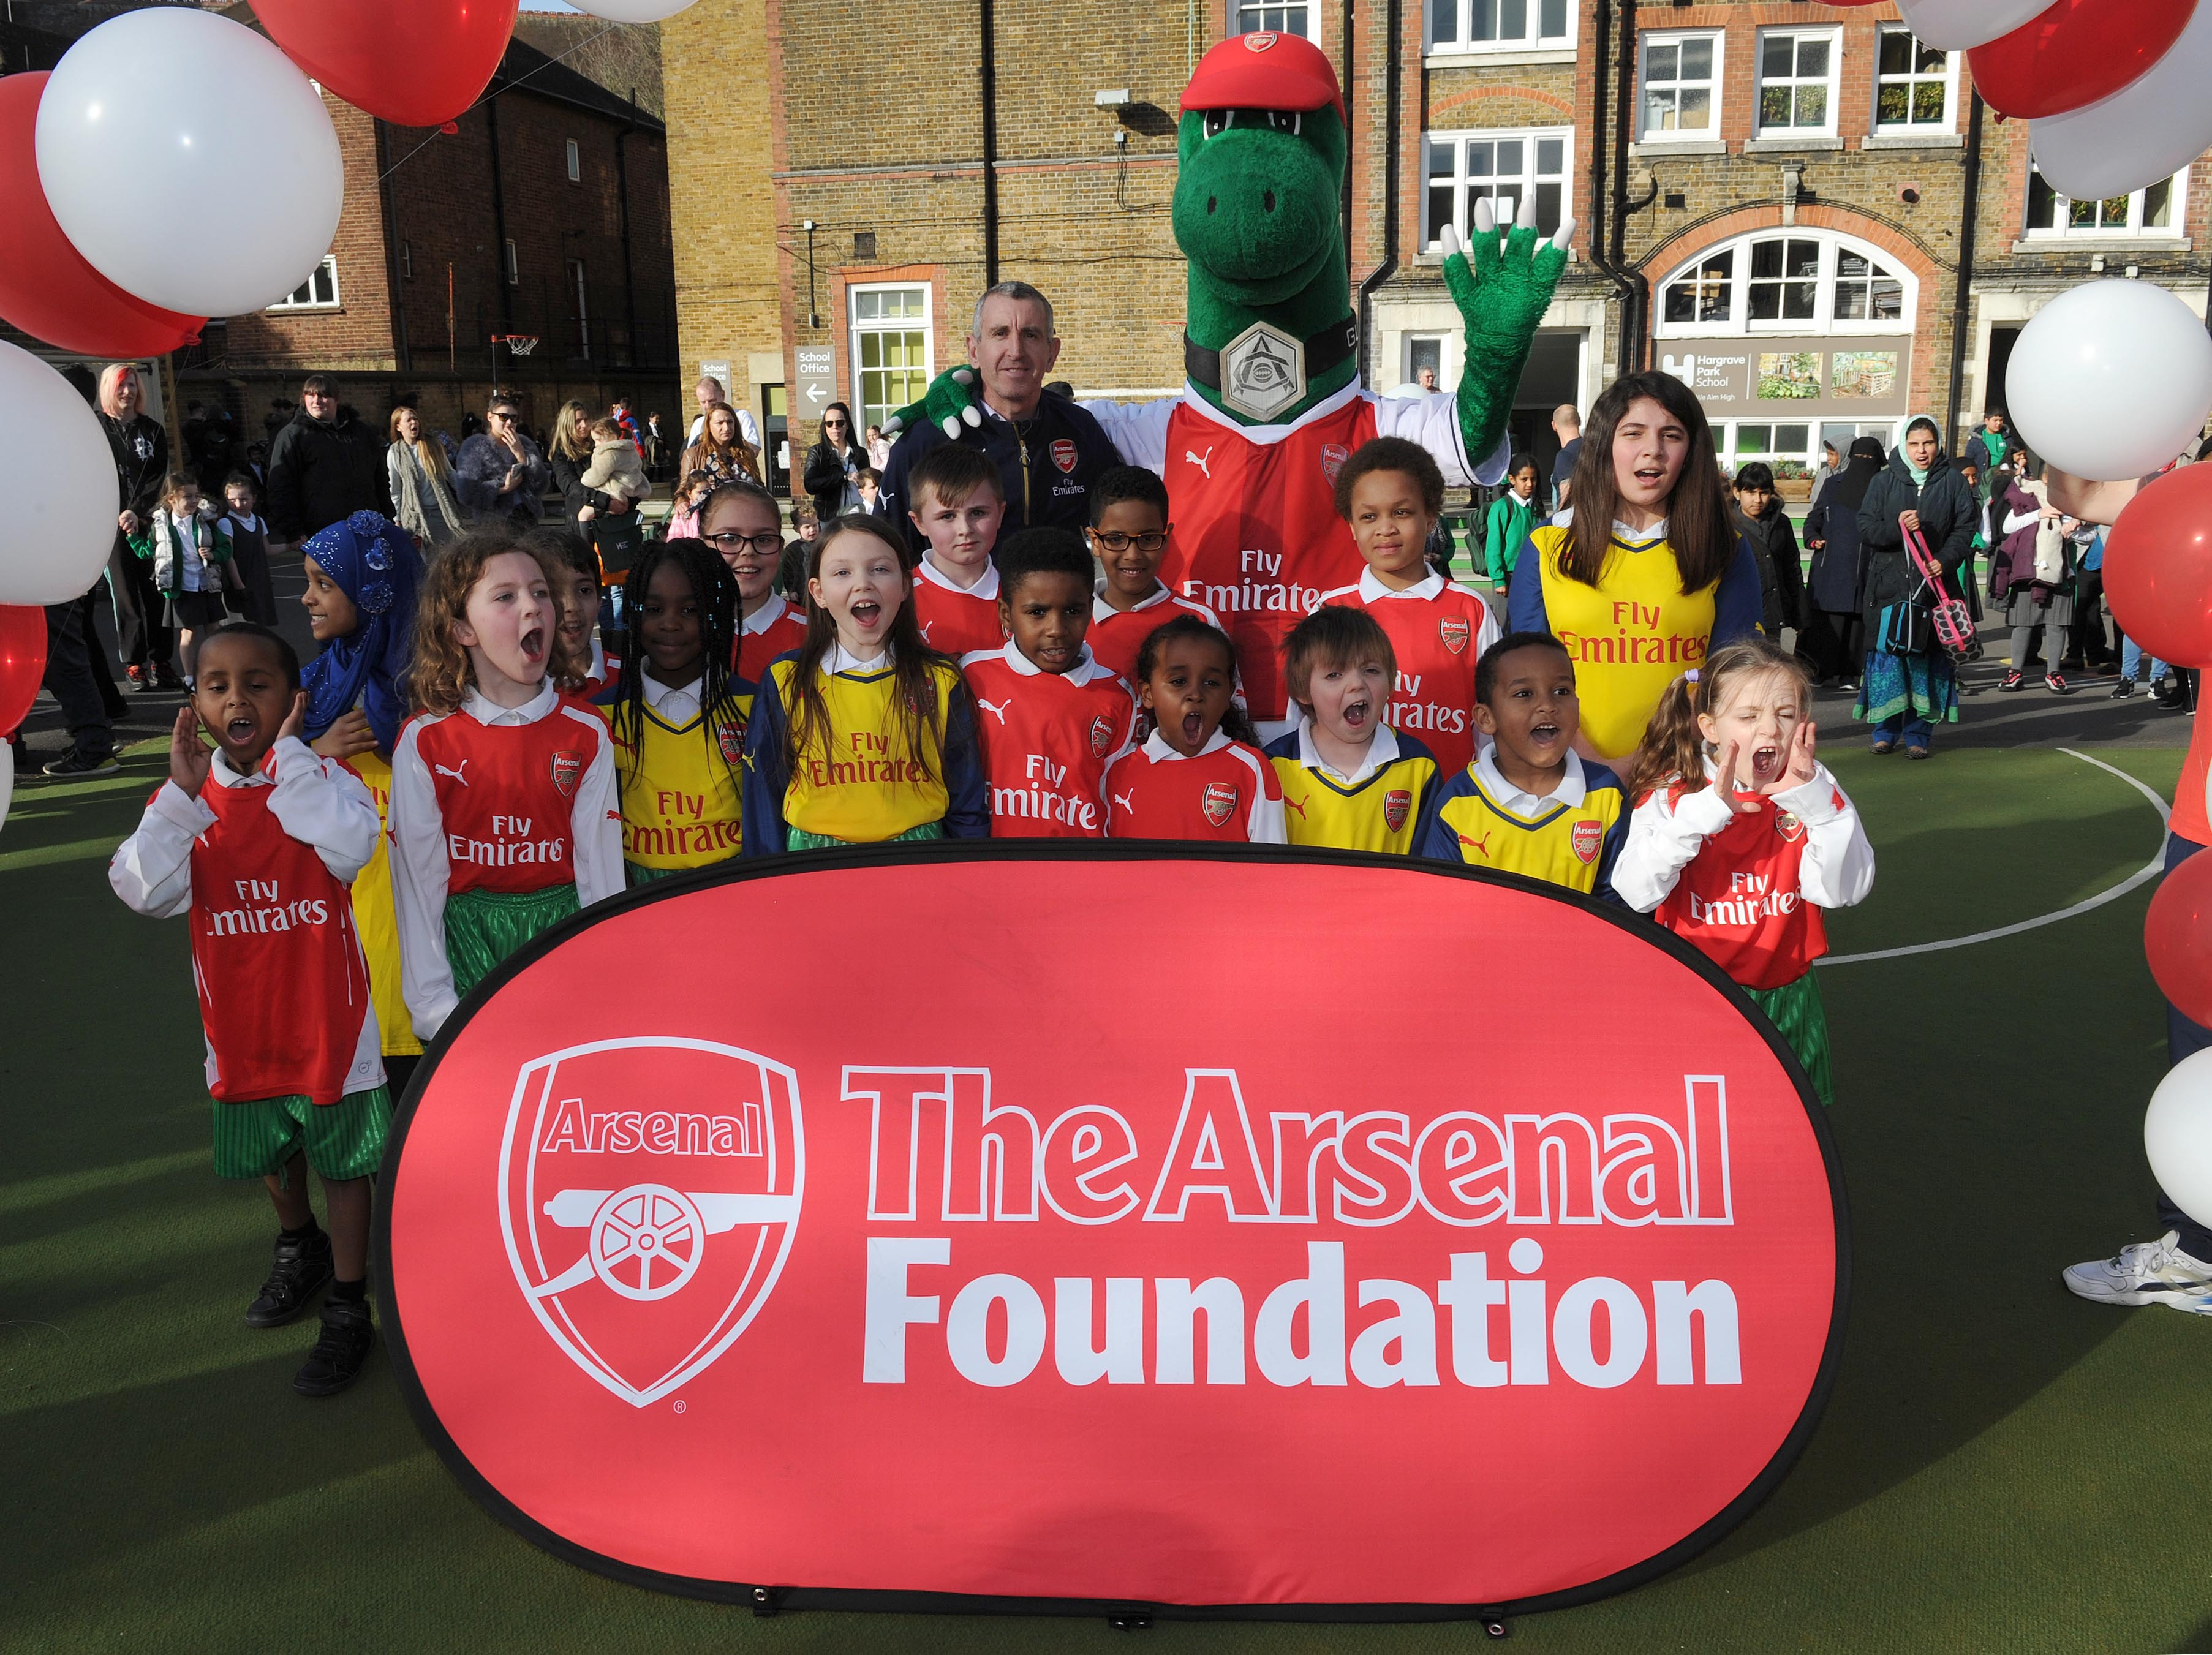 Nigel Winterburn (Ex Arsenal) opens the new football pitch funded by the Arsenal Foundation. Hargrave Park School. Archway, Islington, 13/3/17. Credit : Arsenal Football Club / David Price.